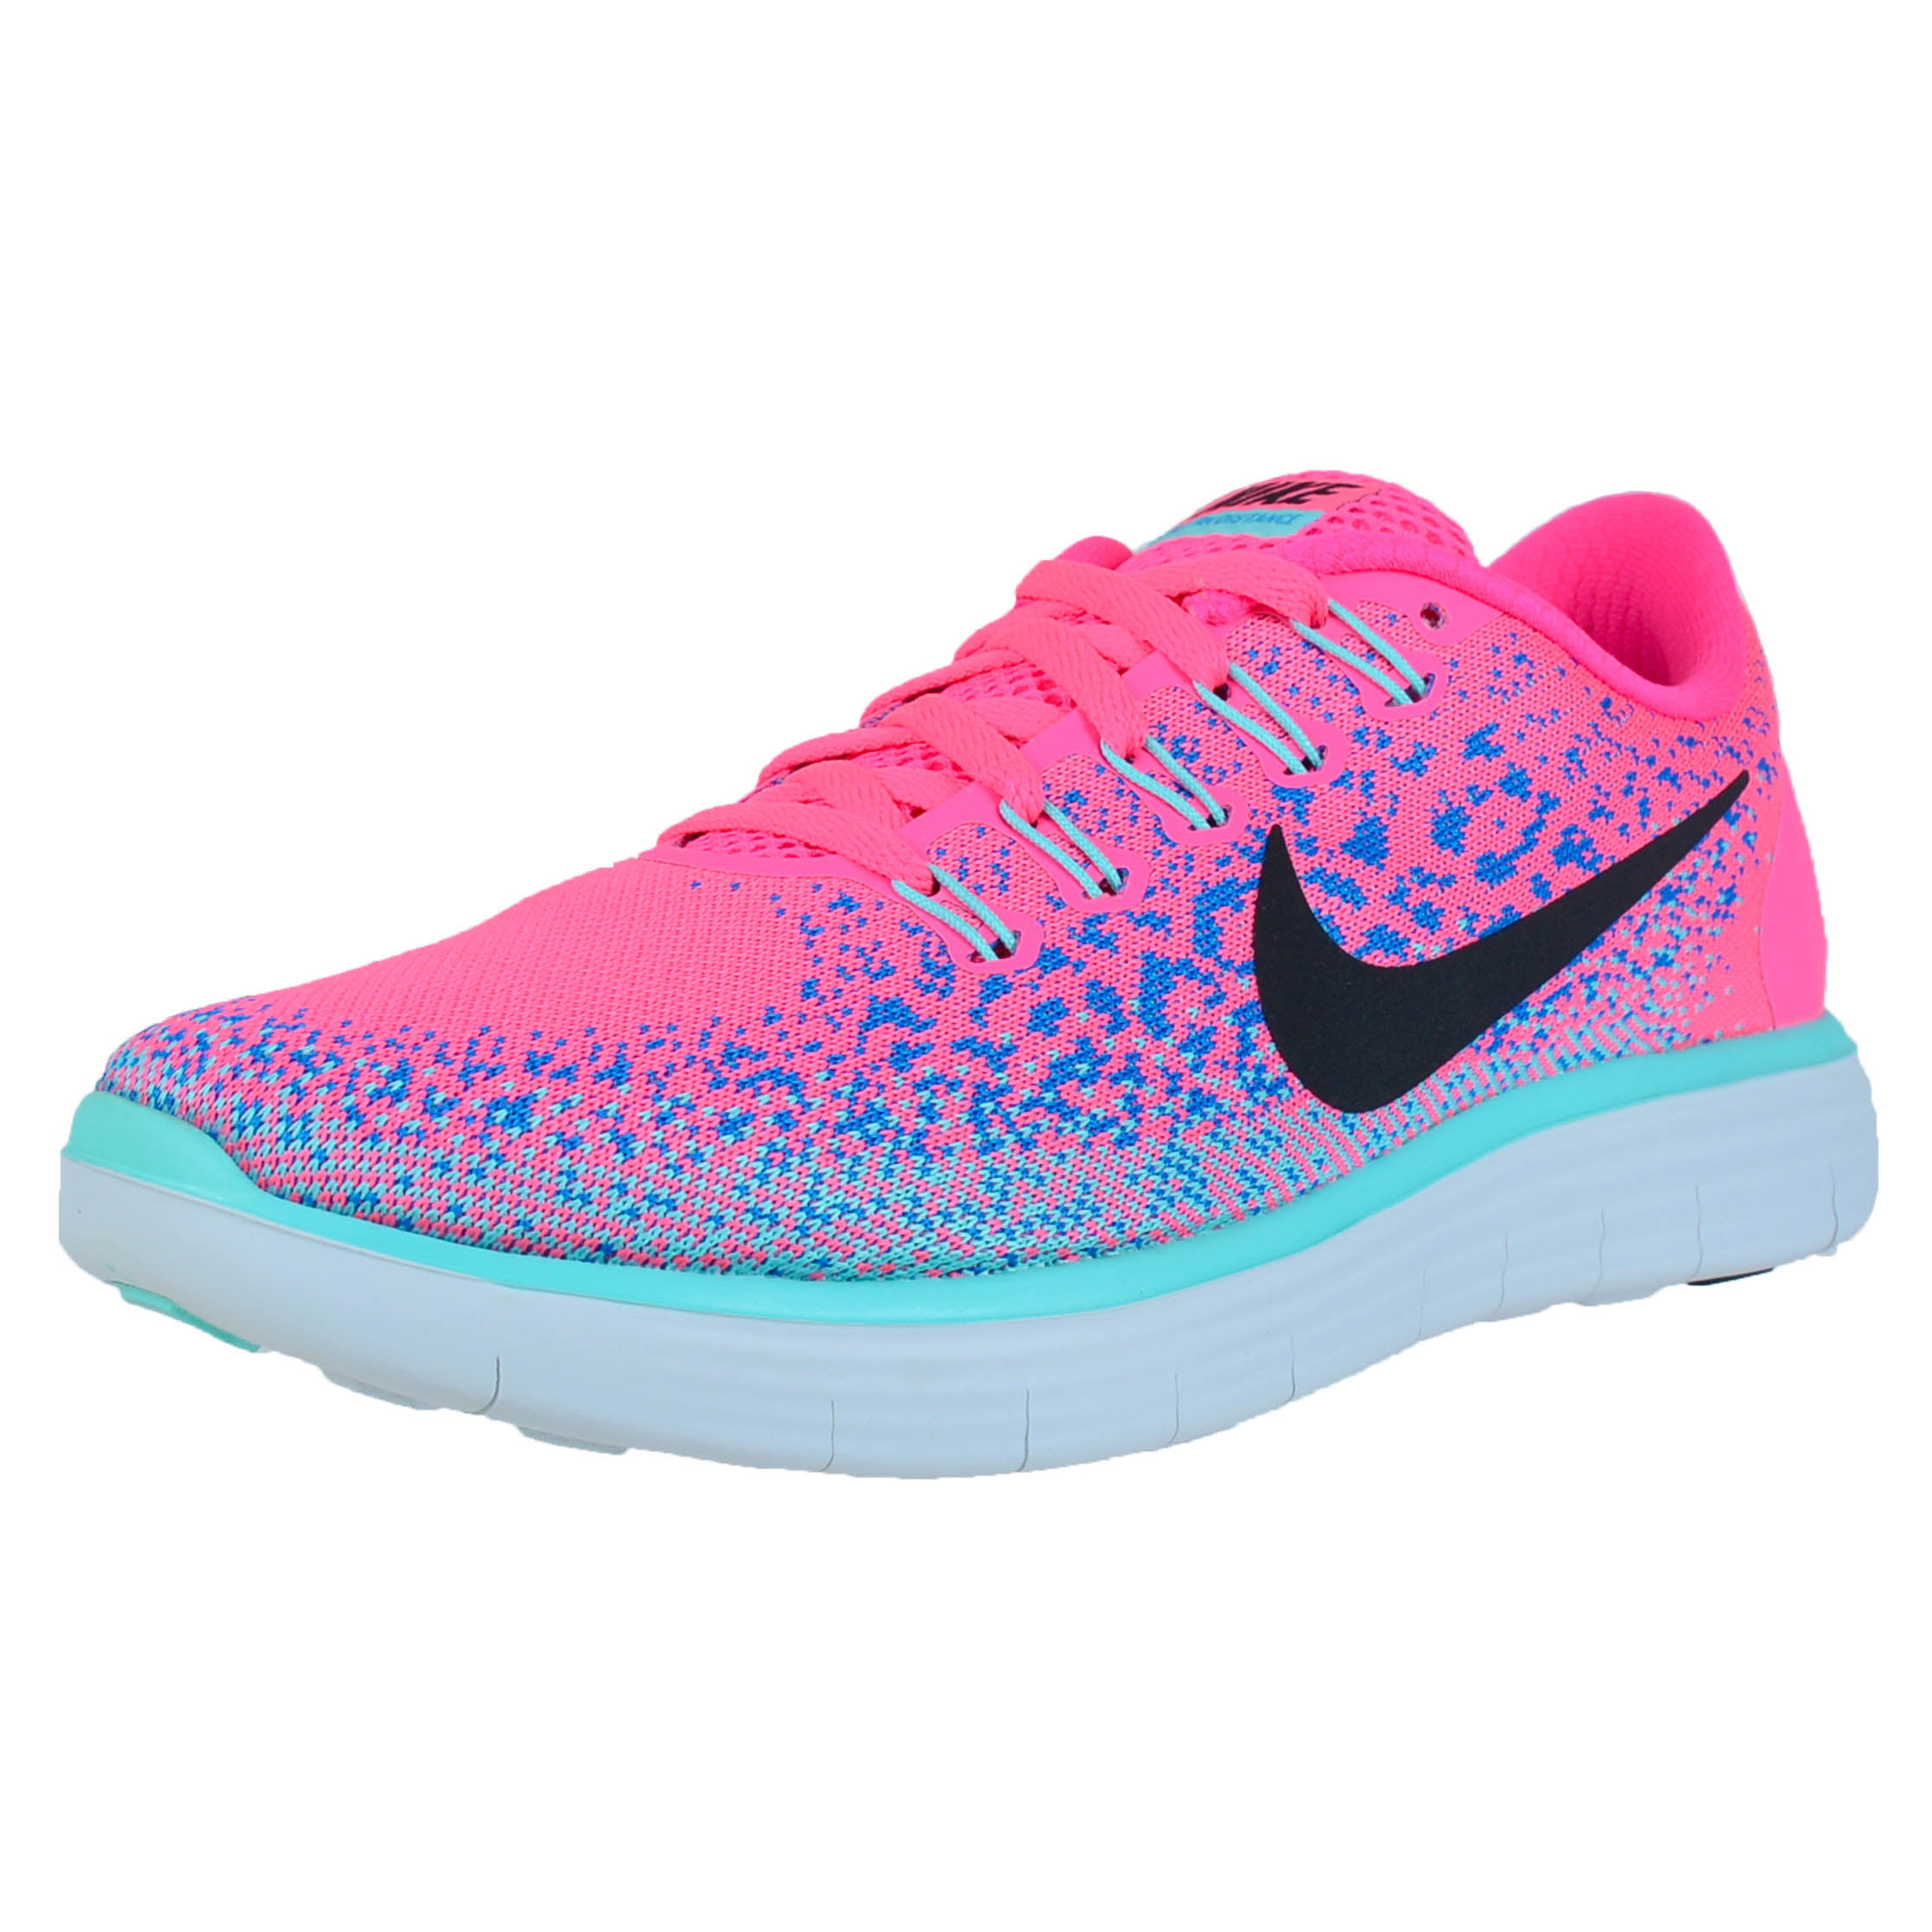 ad8c090d9d18 Nike - NIKE WOMENS FREE RN DISTANCE RUNNING SHOES HYPER PINK BLACK ...